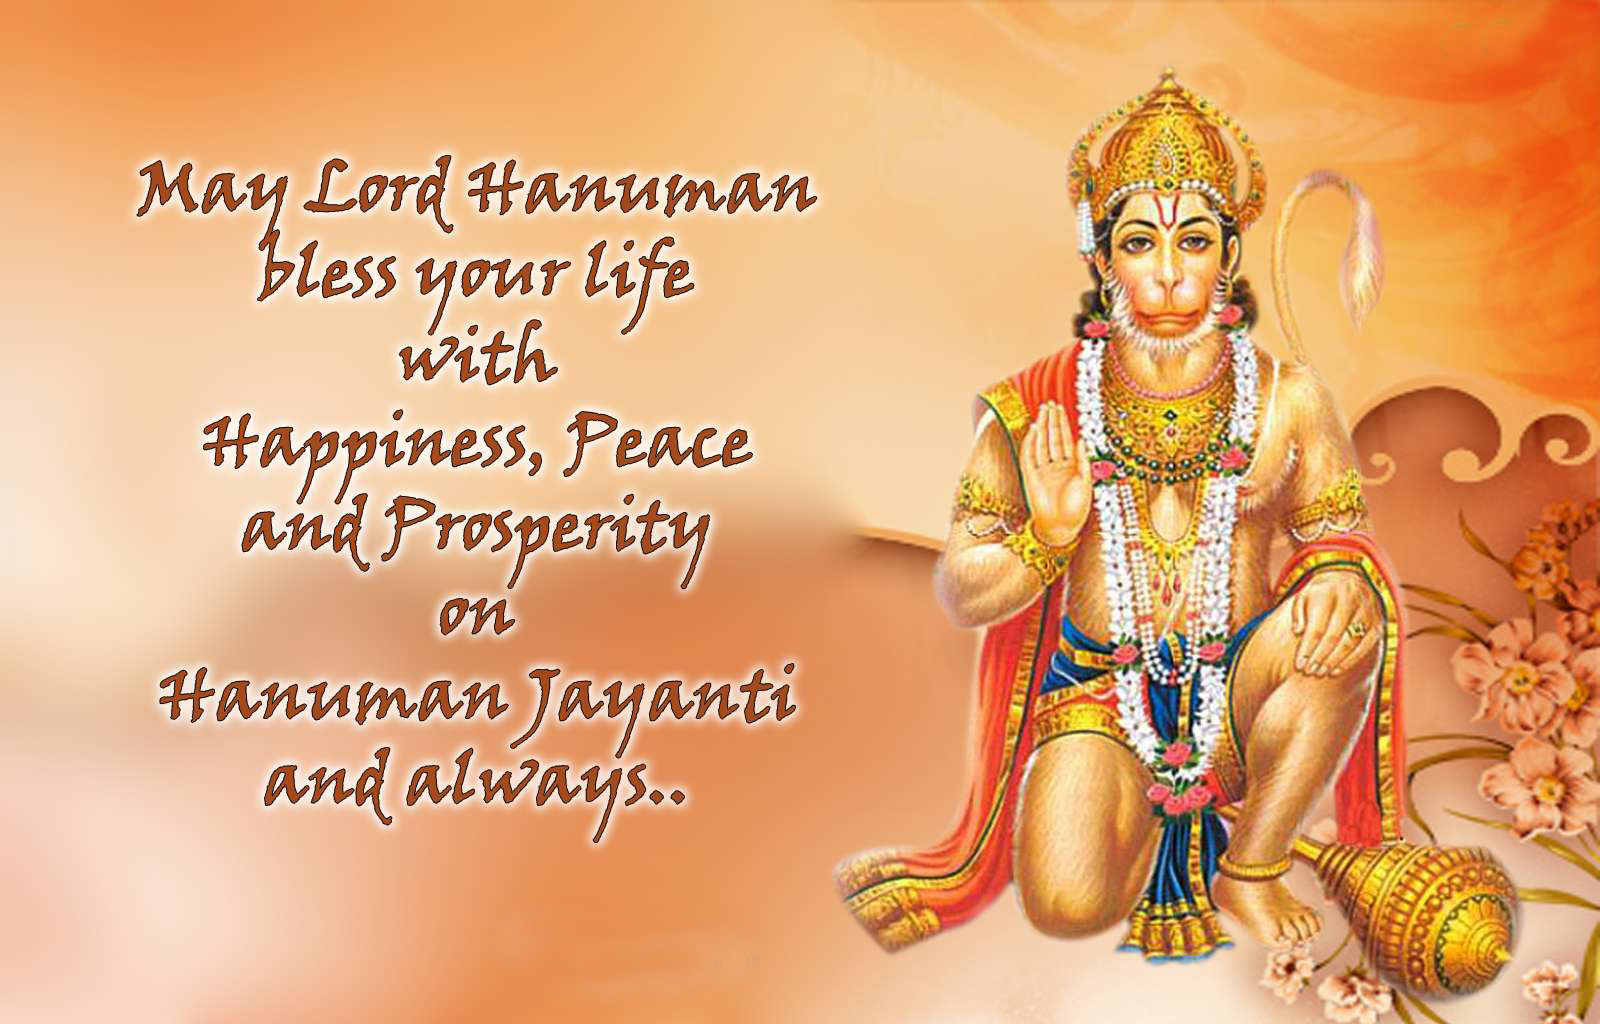 hanuman jayanti images 2017, quotes wallpapers wishes photos sms